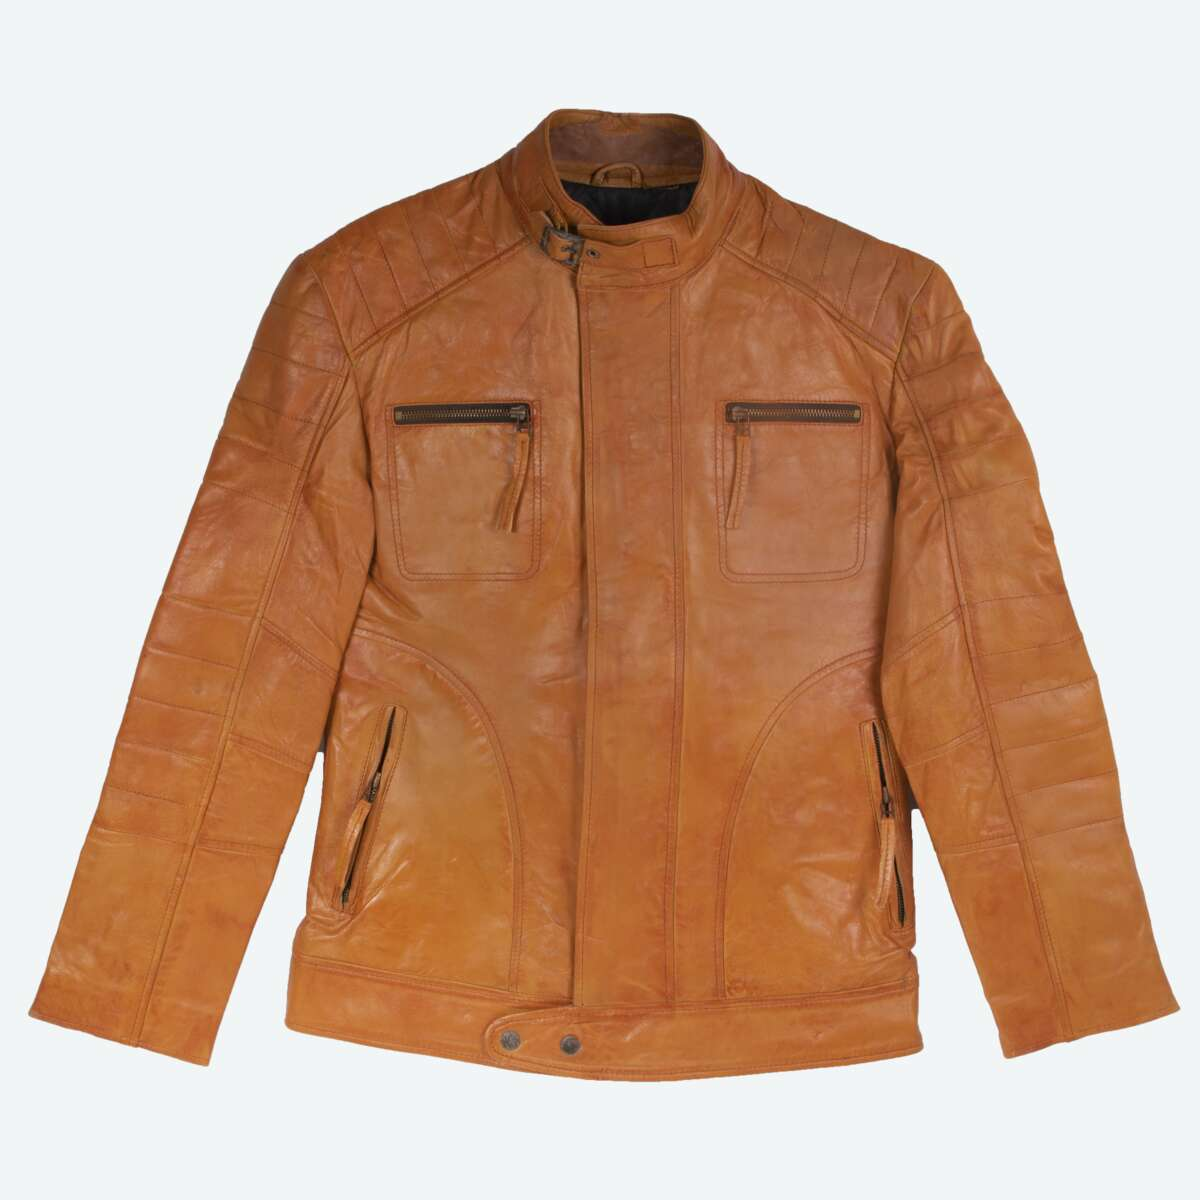 Tan Leather Field Jacket